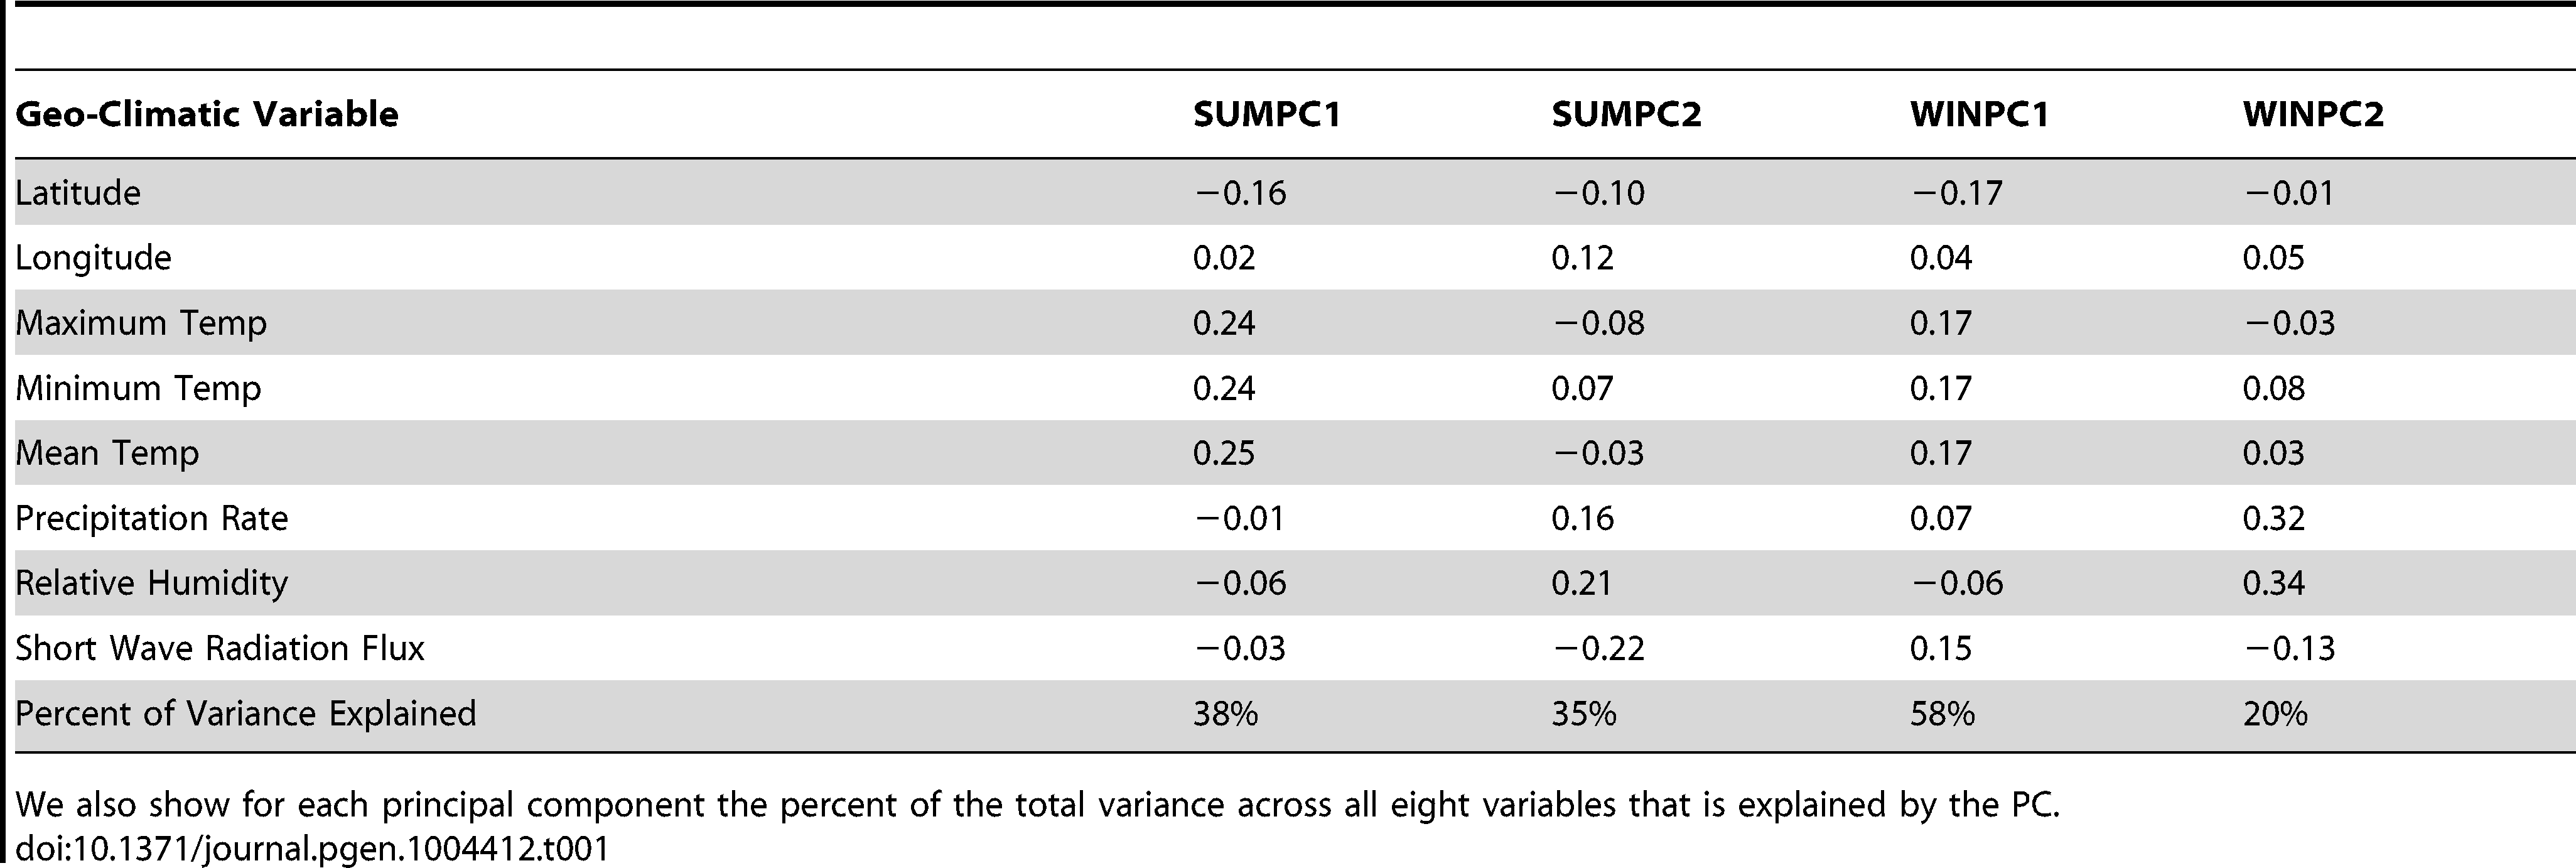 The contribution of each geo-climatic variable to each of our four principal components, scaled such that the absolute value of the entries in each column sum to one (up to rounding error).